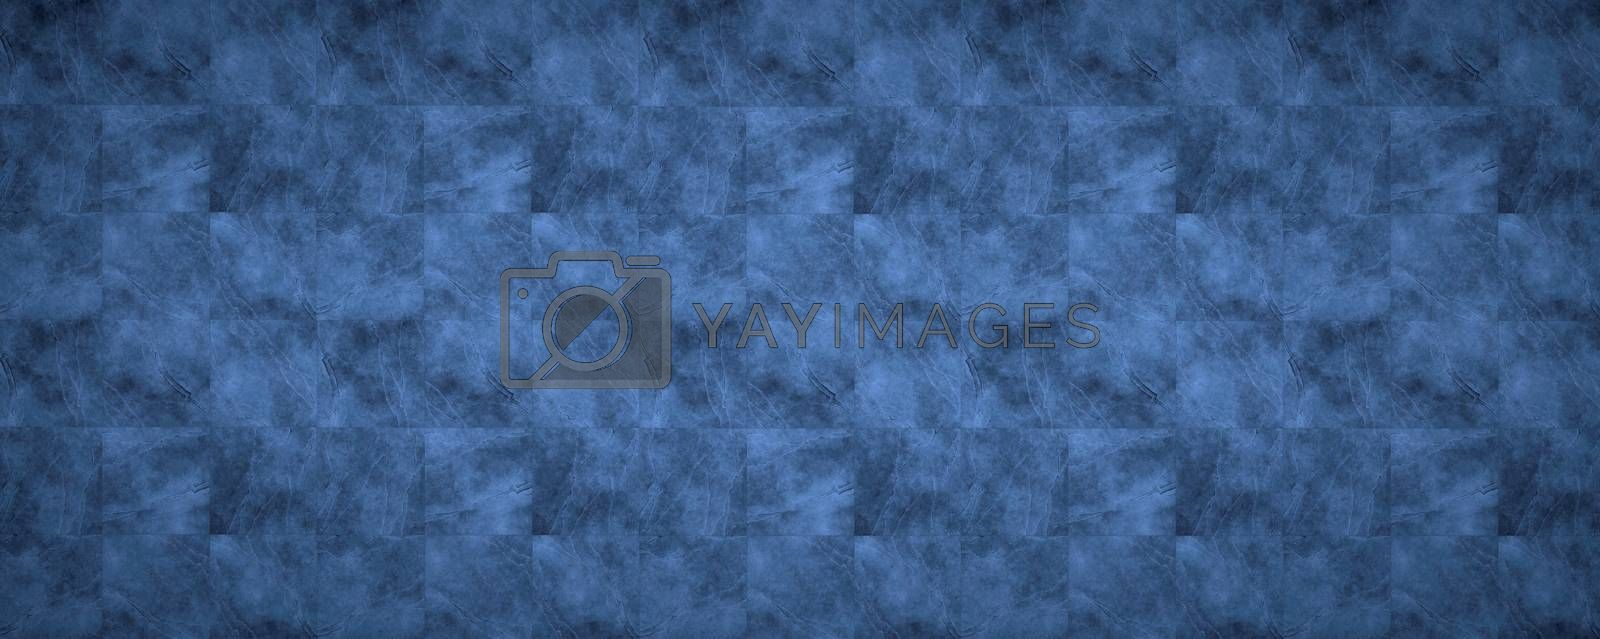 Background image showing a surface with the texture of marble on ceramic tiles in blue tones